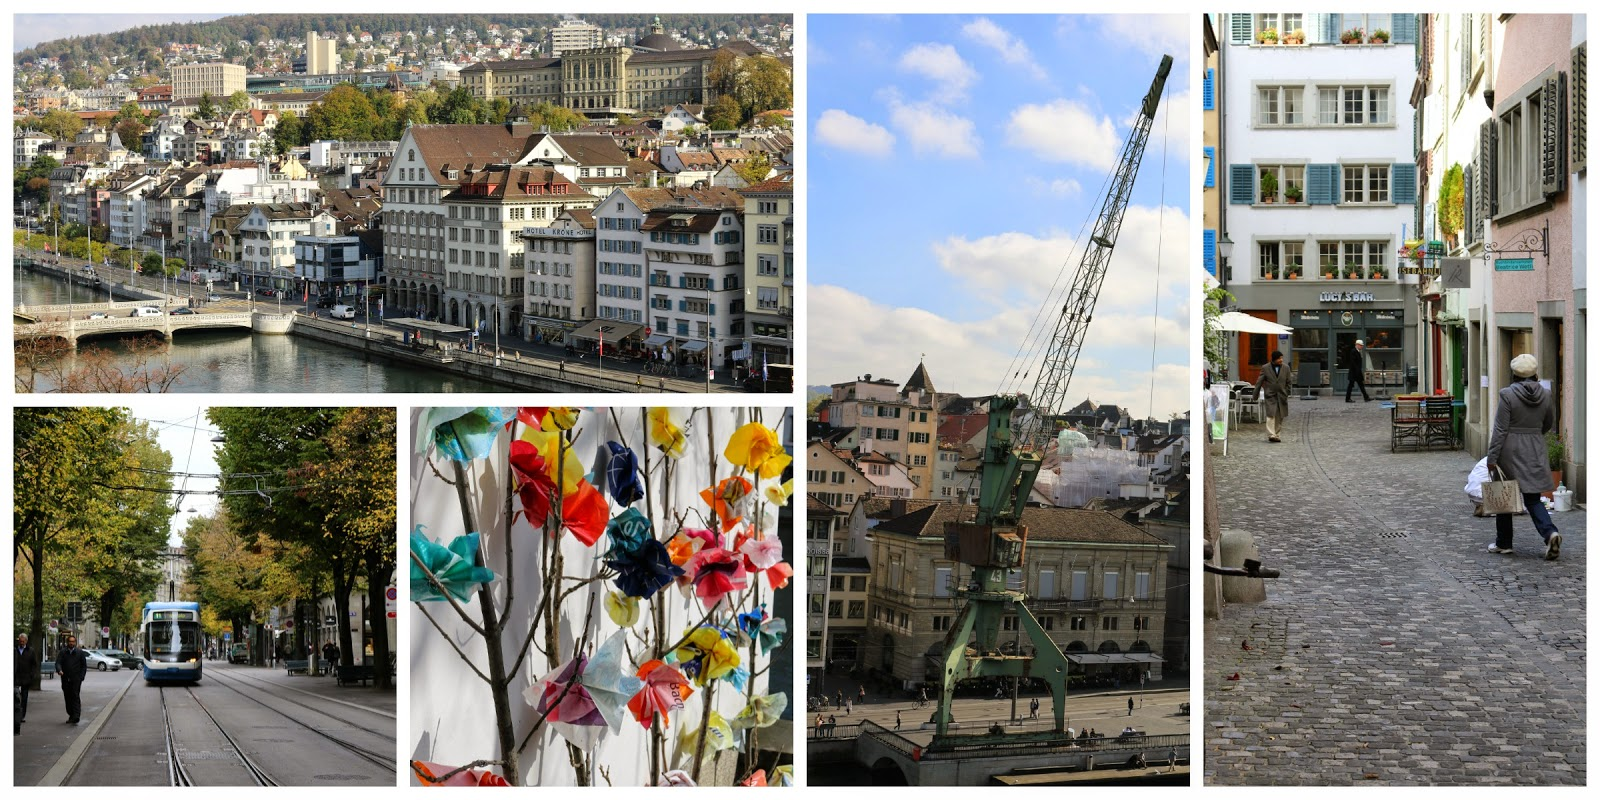 Schweiz, Reisen, Berge, Städtetipps, Shop 'till you drop, Urban Jungle Bloggers, Viadukt